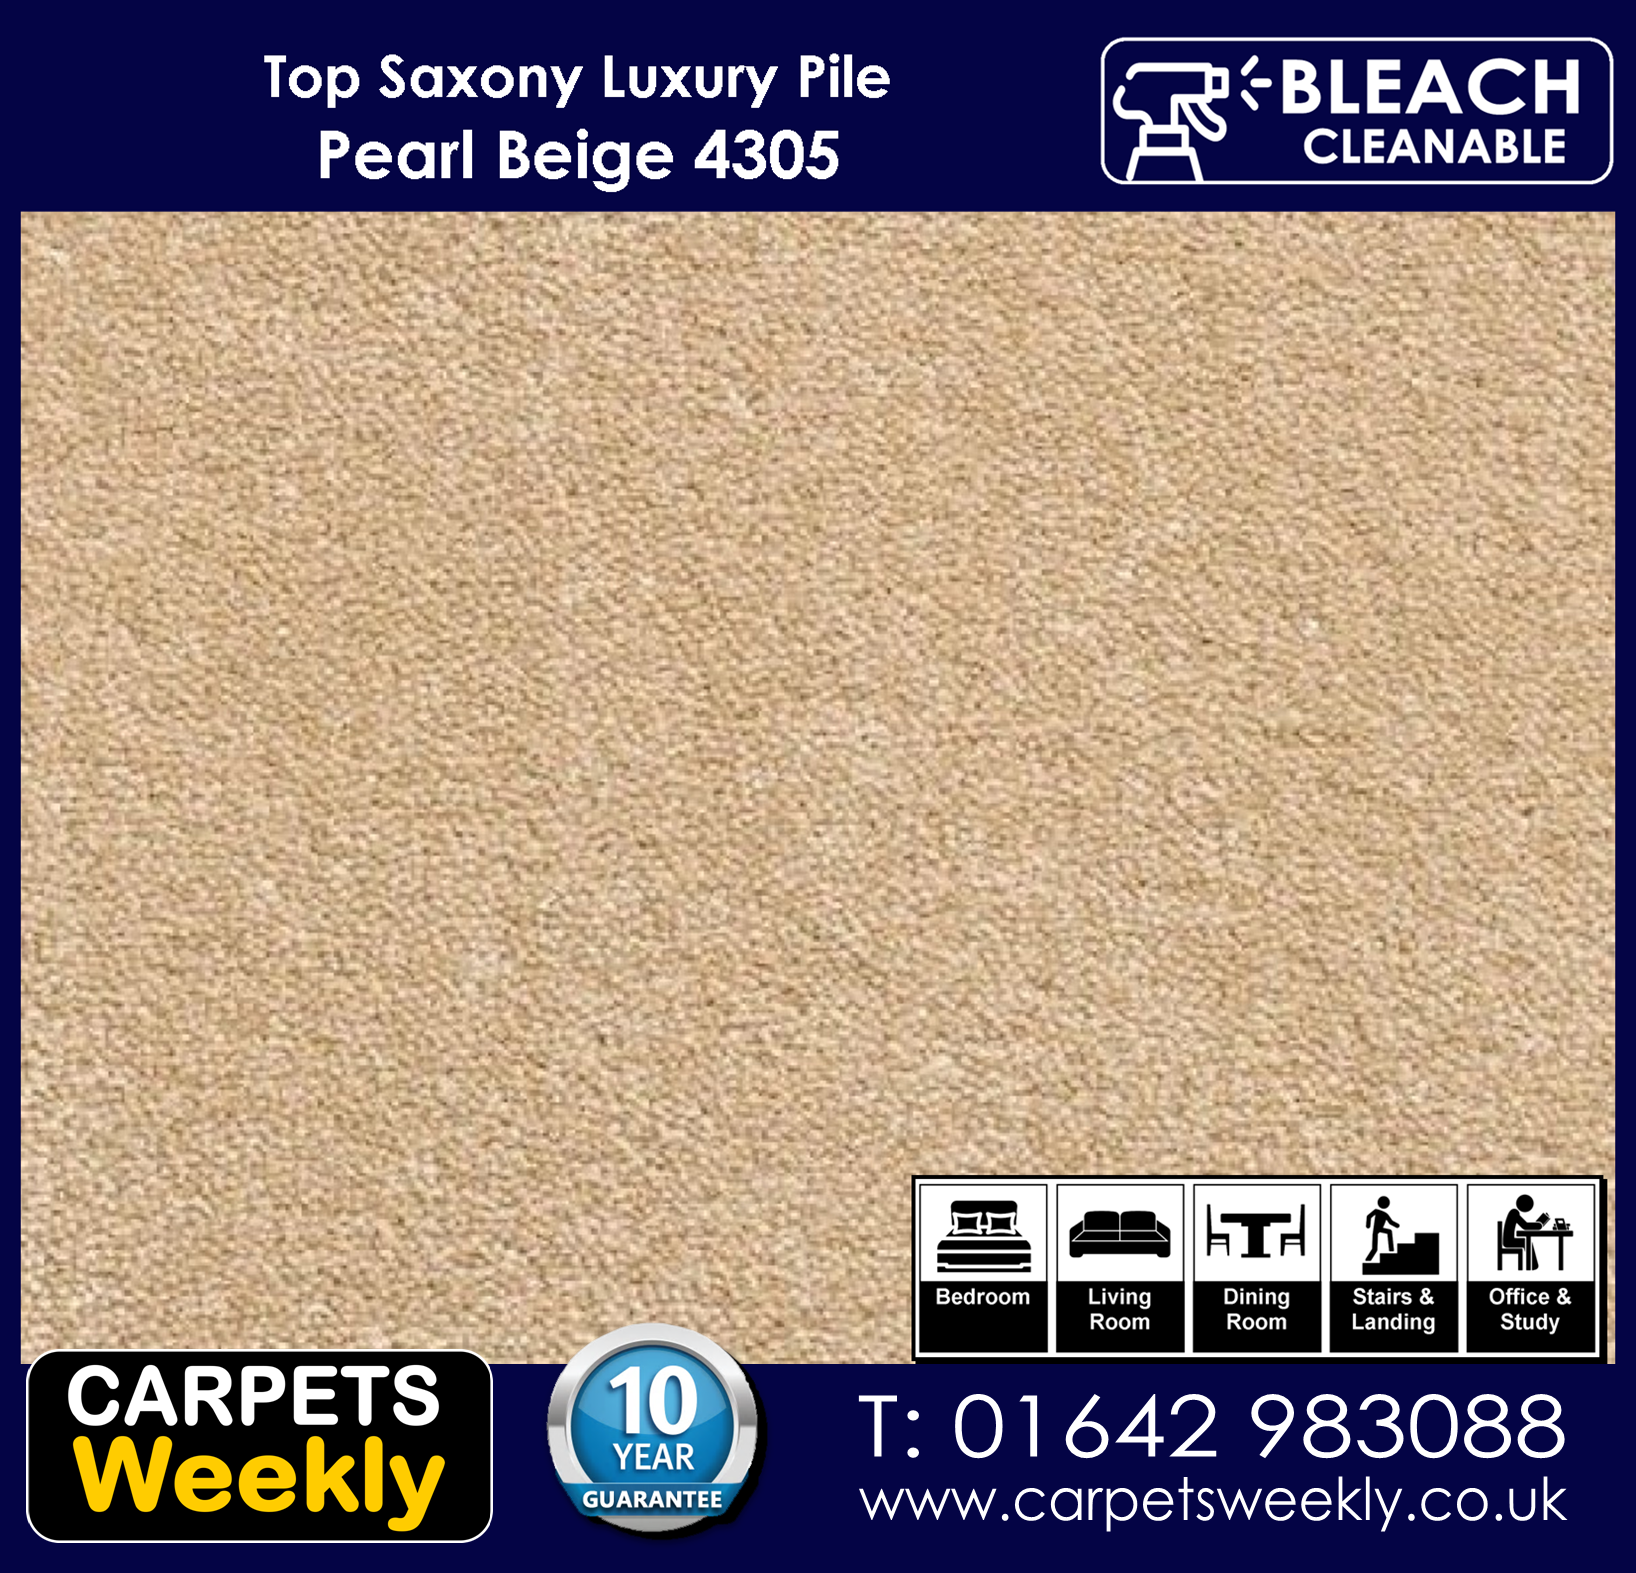 PEARL BEIGE 4305 Top Saxony from Carpets Weekly